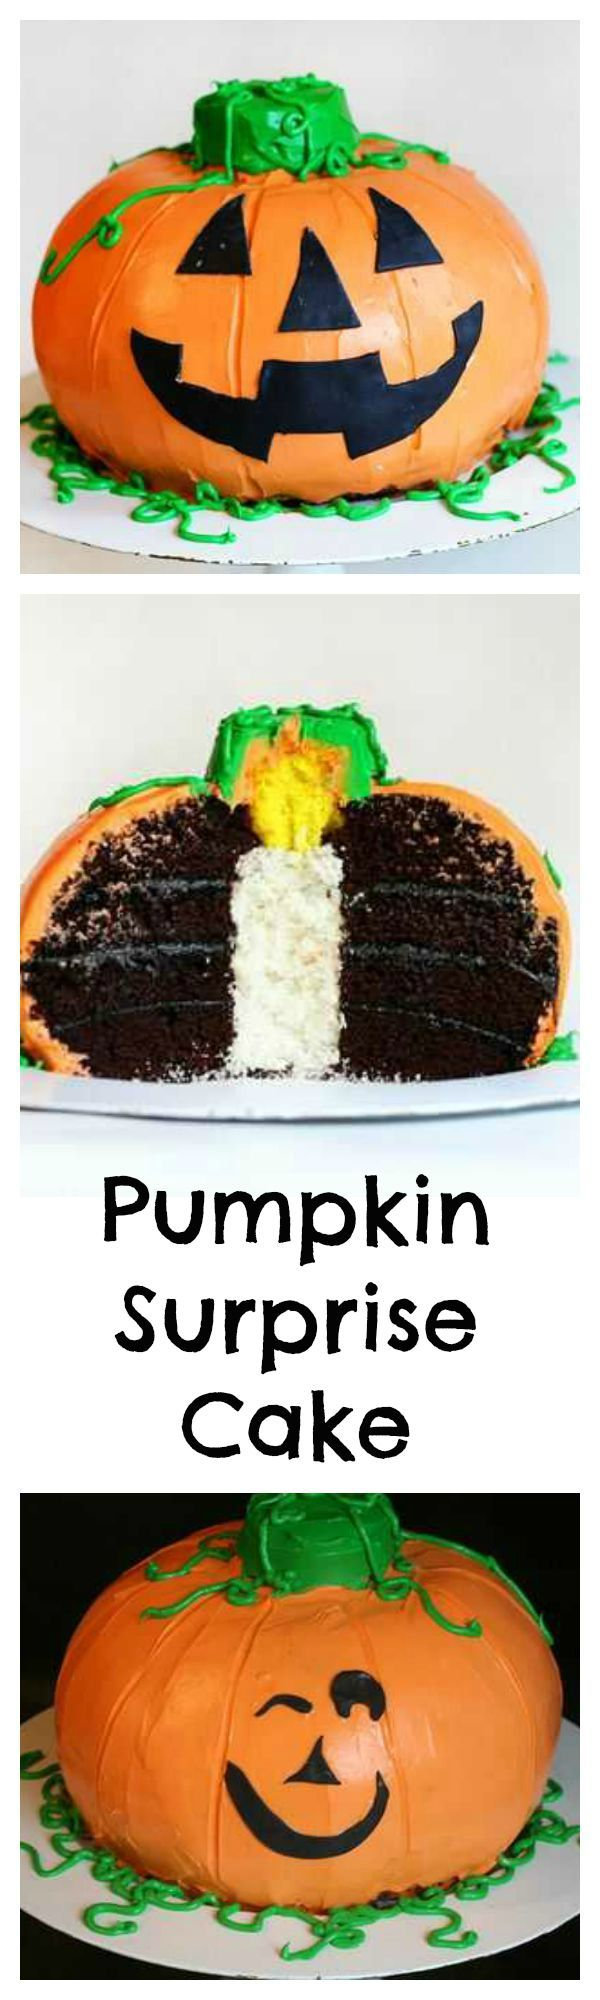 This fun pumpkin shaped cake has the perfect Halloween surprise hiding inside: when you cut into it, you'll see a candle!